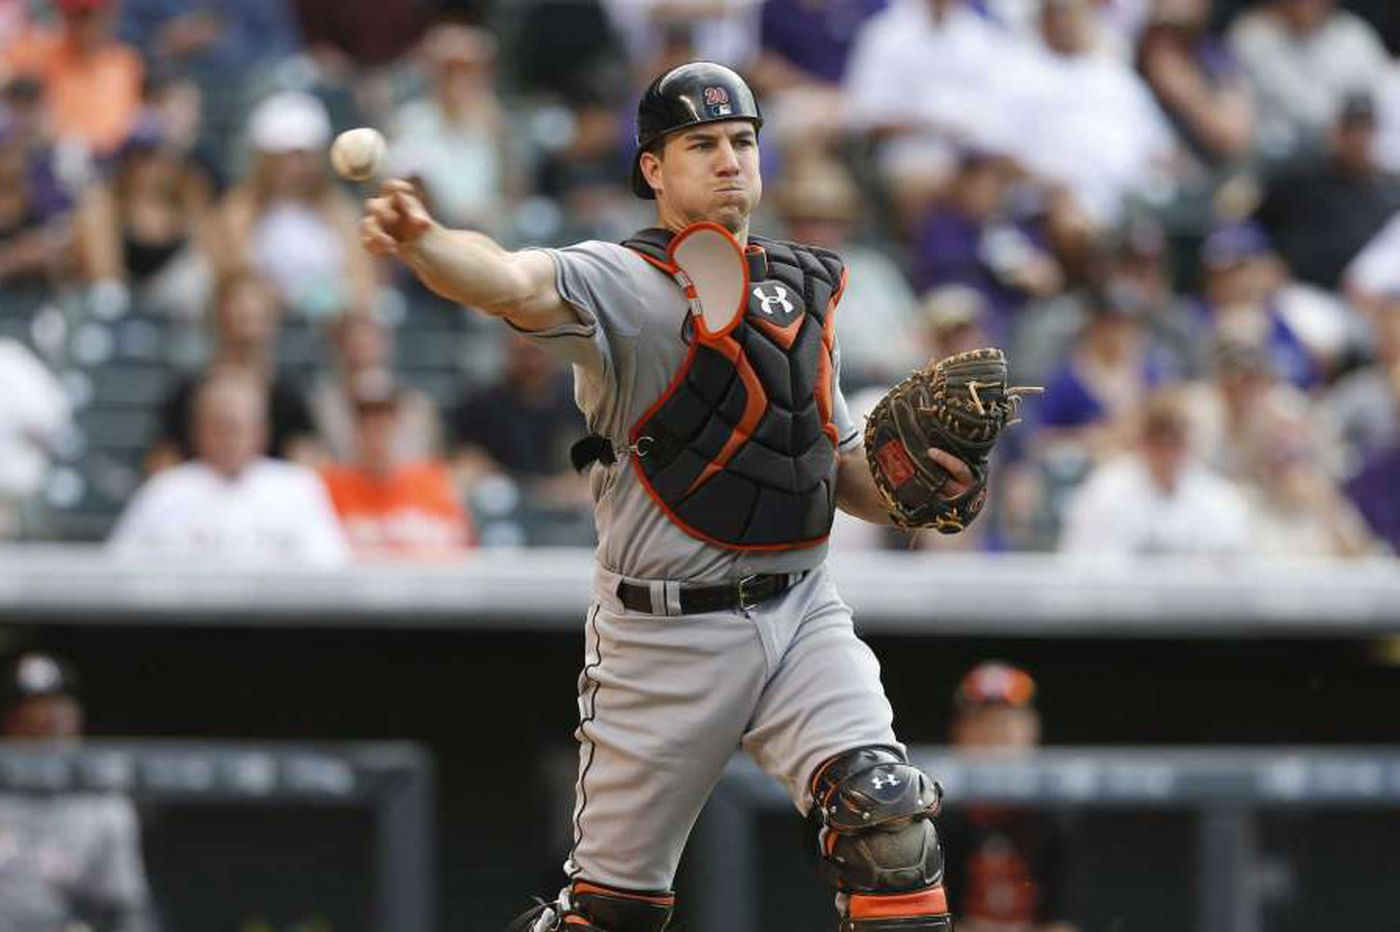 Phillies star J.T. Realmuto turned into a catcher thanks to two visionary scouts and a little luck